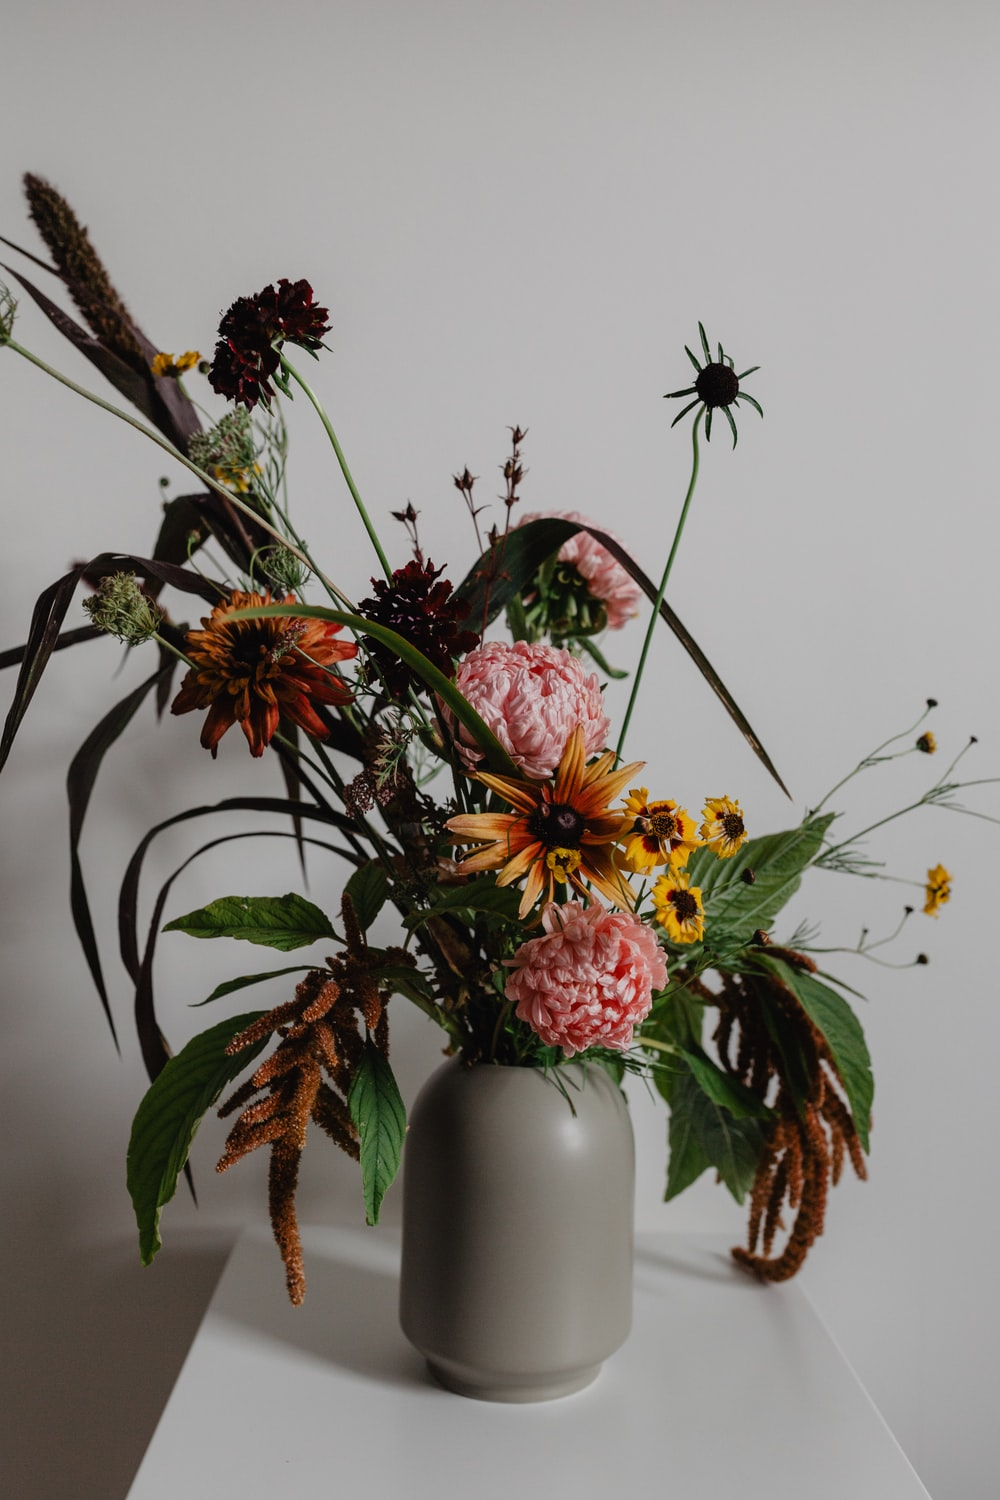 yellow and pink flowers in grey vase on white surface